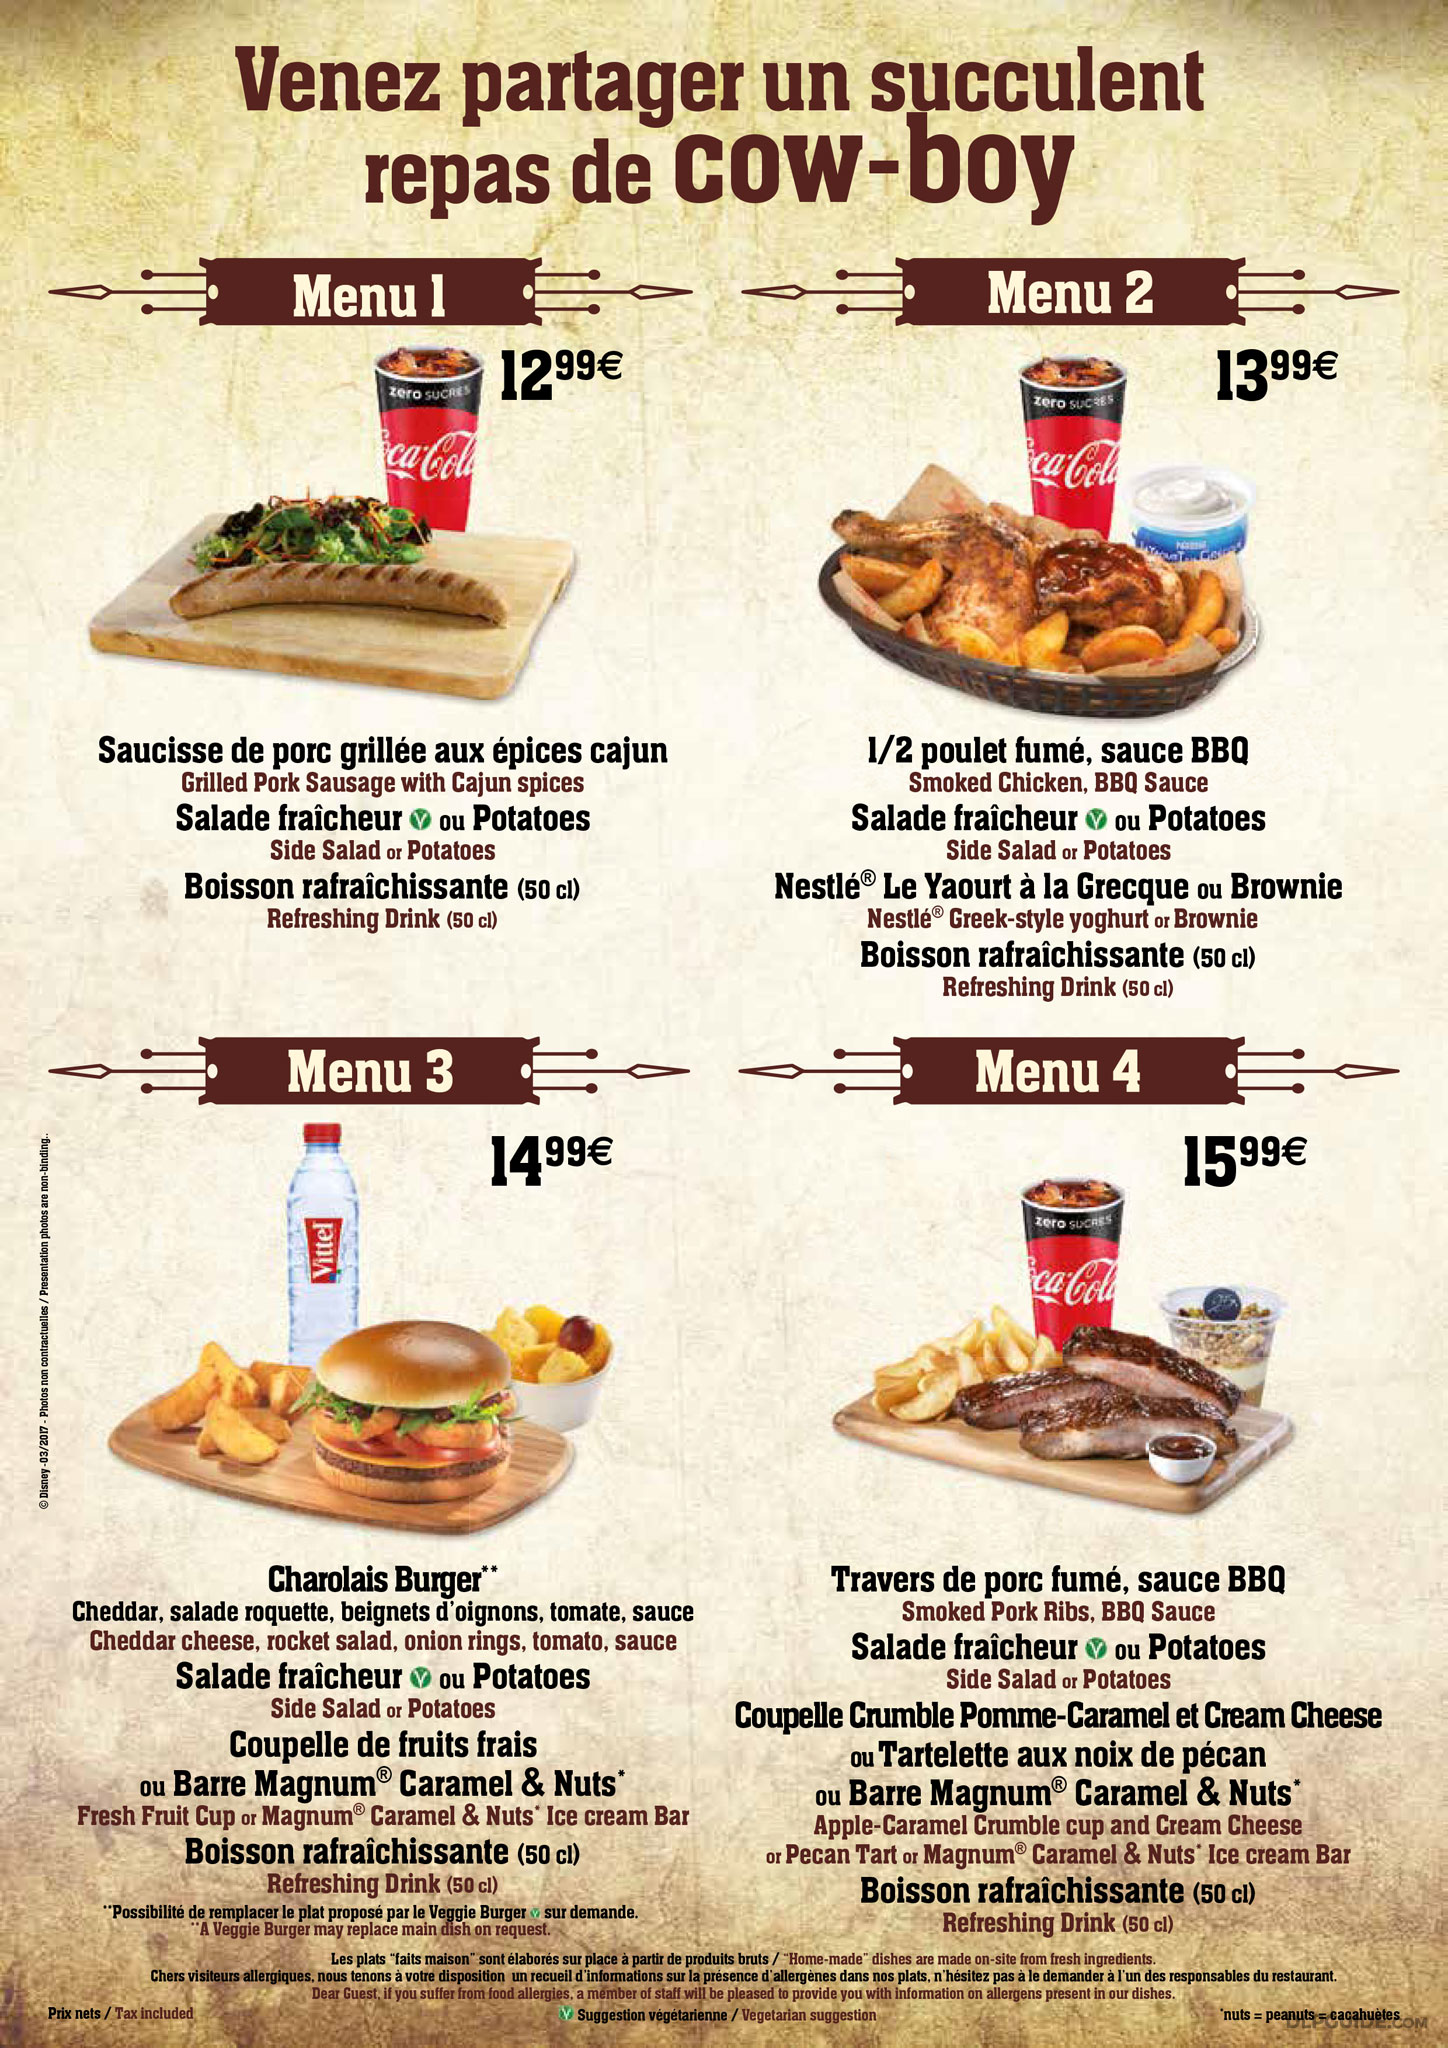 Cowboy Cookout Barbecue menu — DLP Guide • Disneyland Paris ...